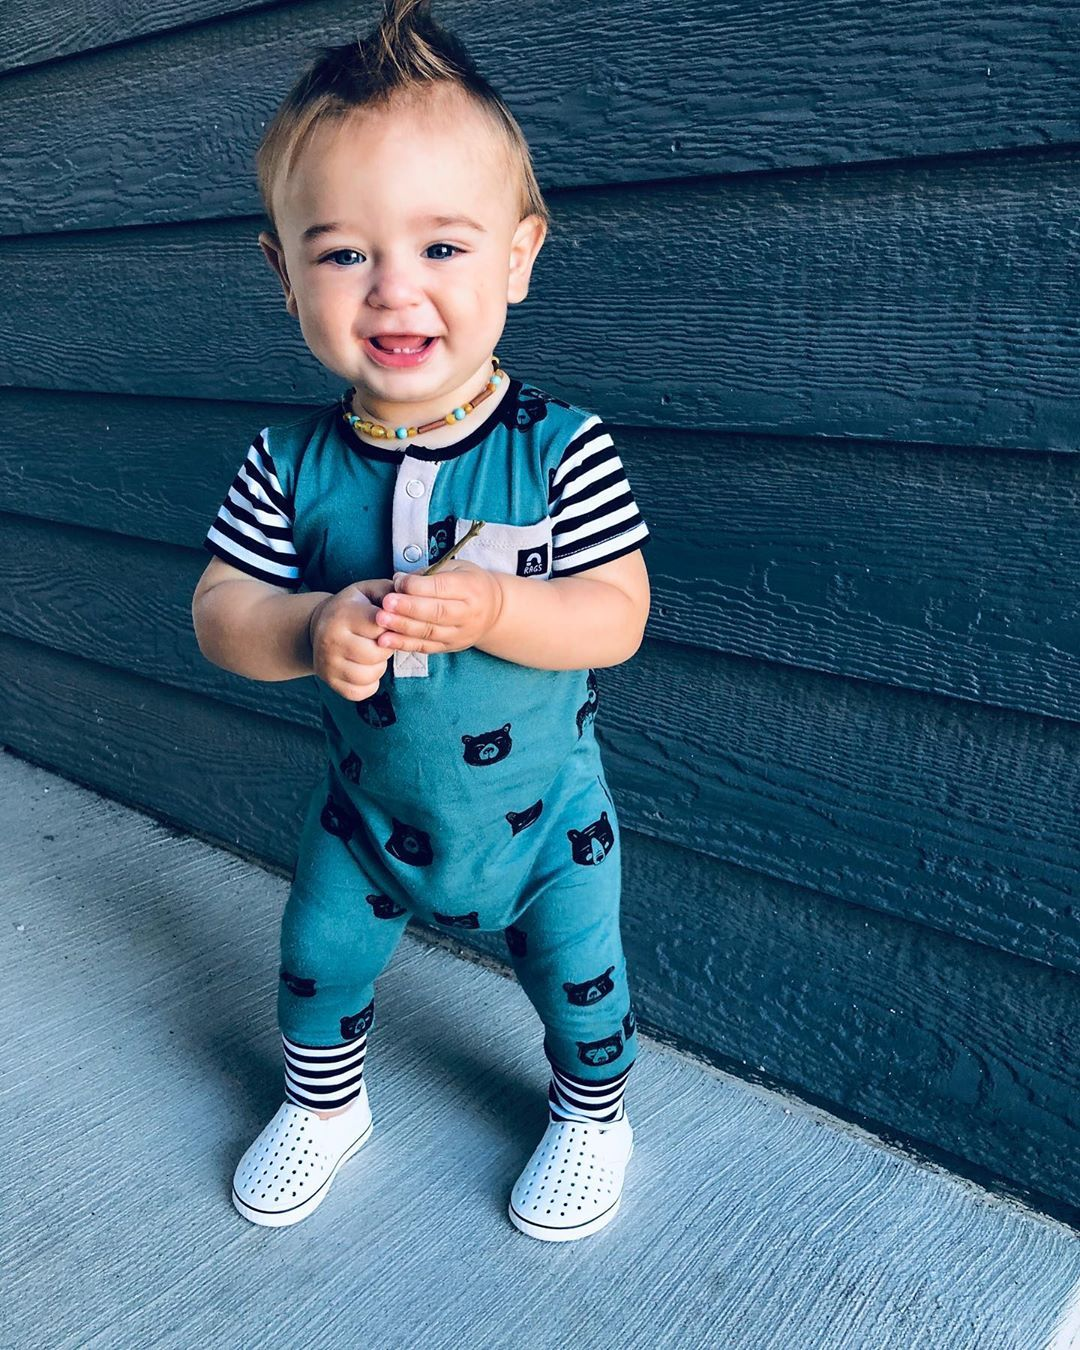 Little Dude Is 10 Months Old And Lookin Too Cute In This Rag Tagyourrags Reposted From Maviandknox Old Baby Clothes Rompers For Kids Baby Boy Outfits